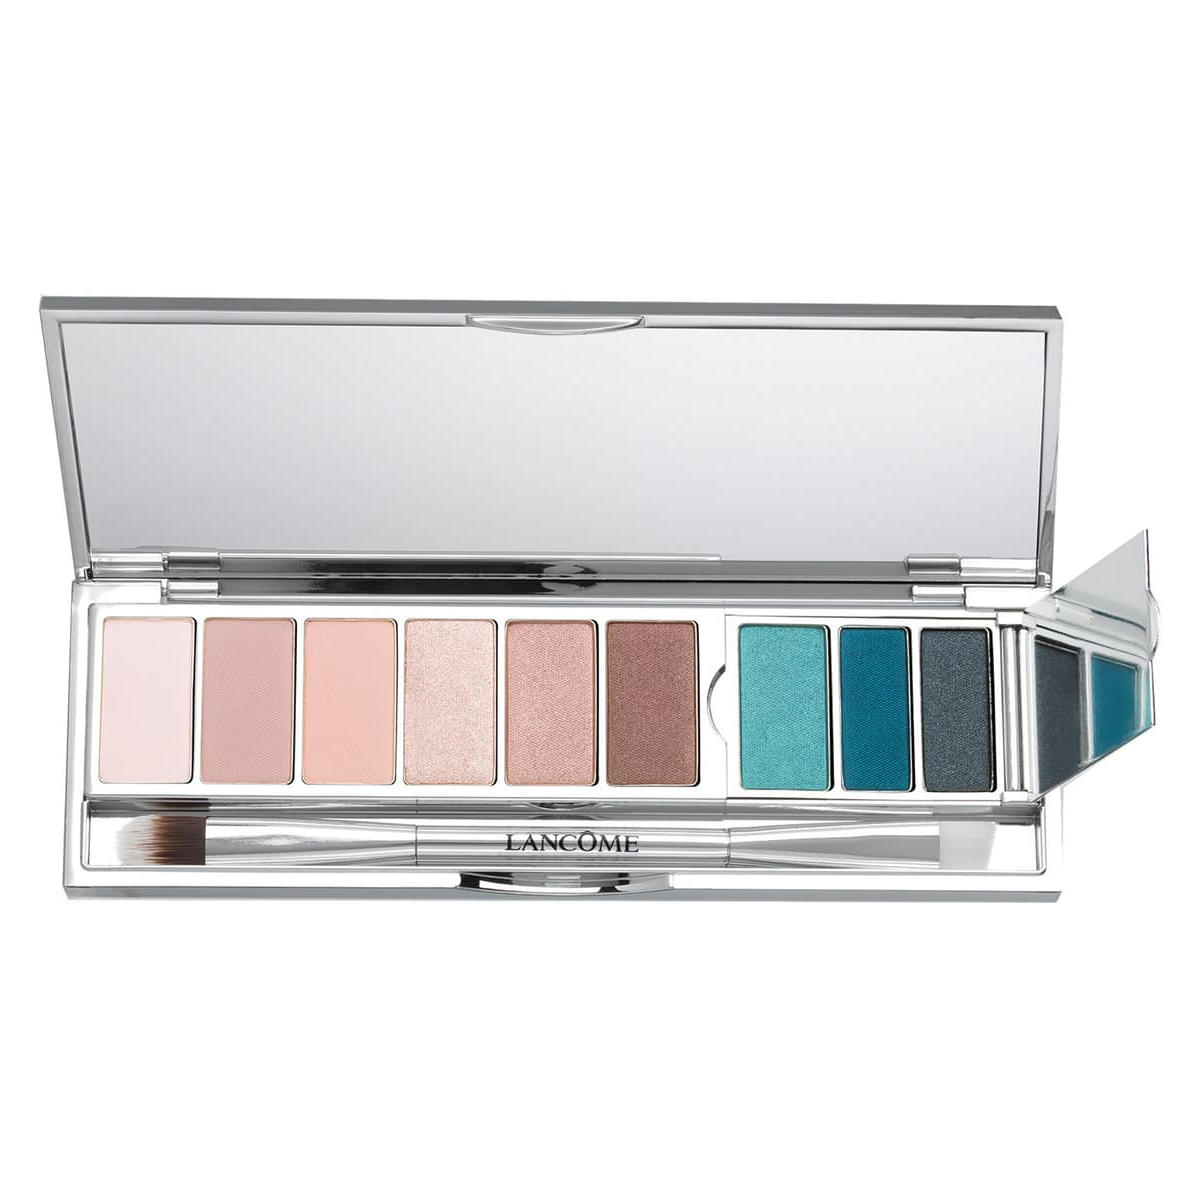 Lancome My French Palette Eyeshadow Palette